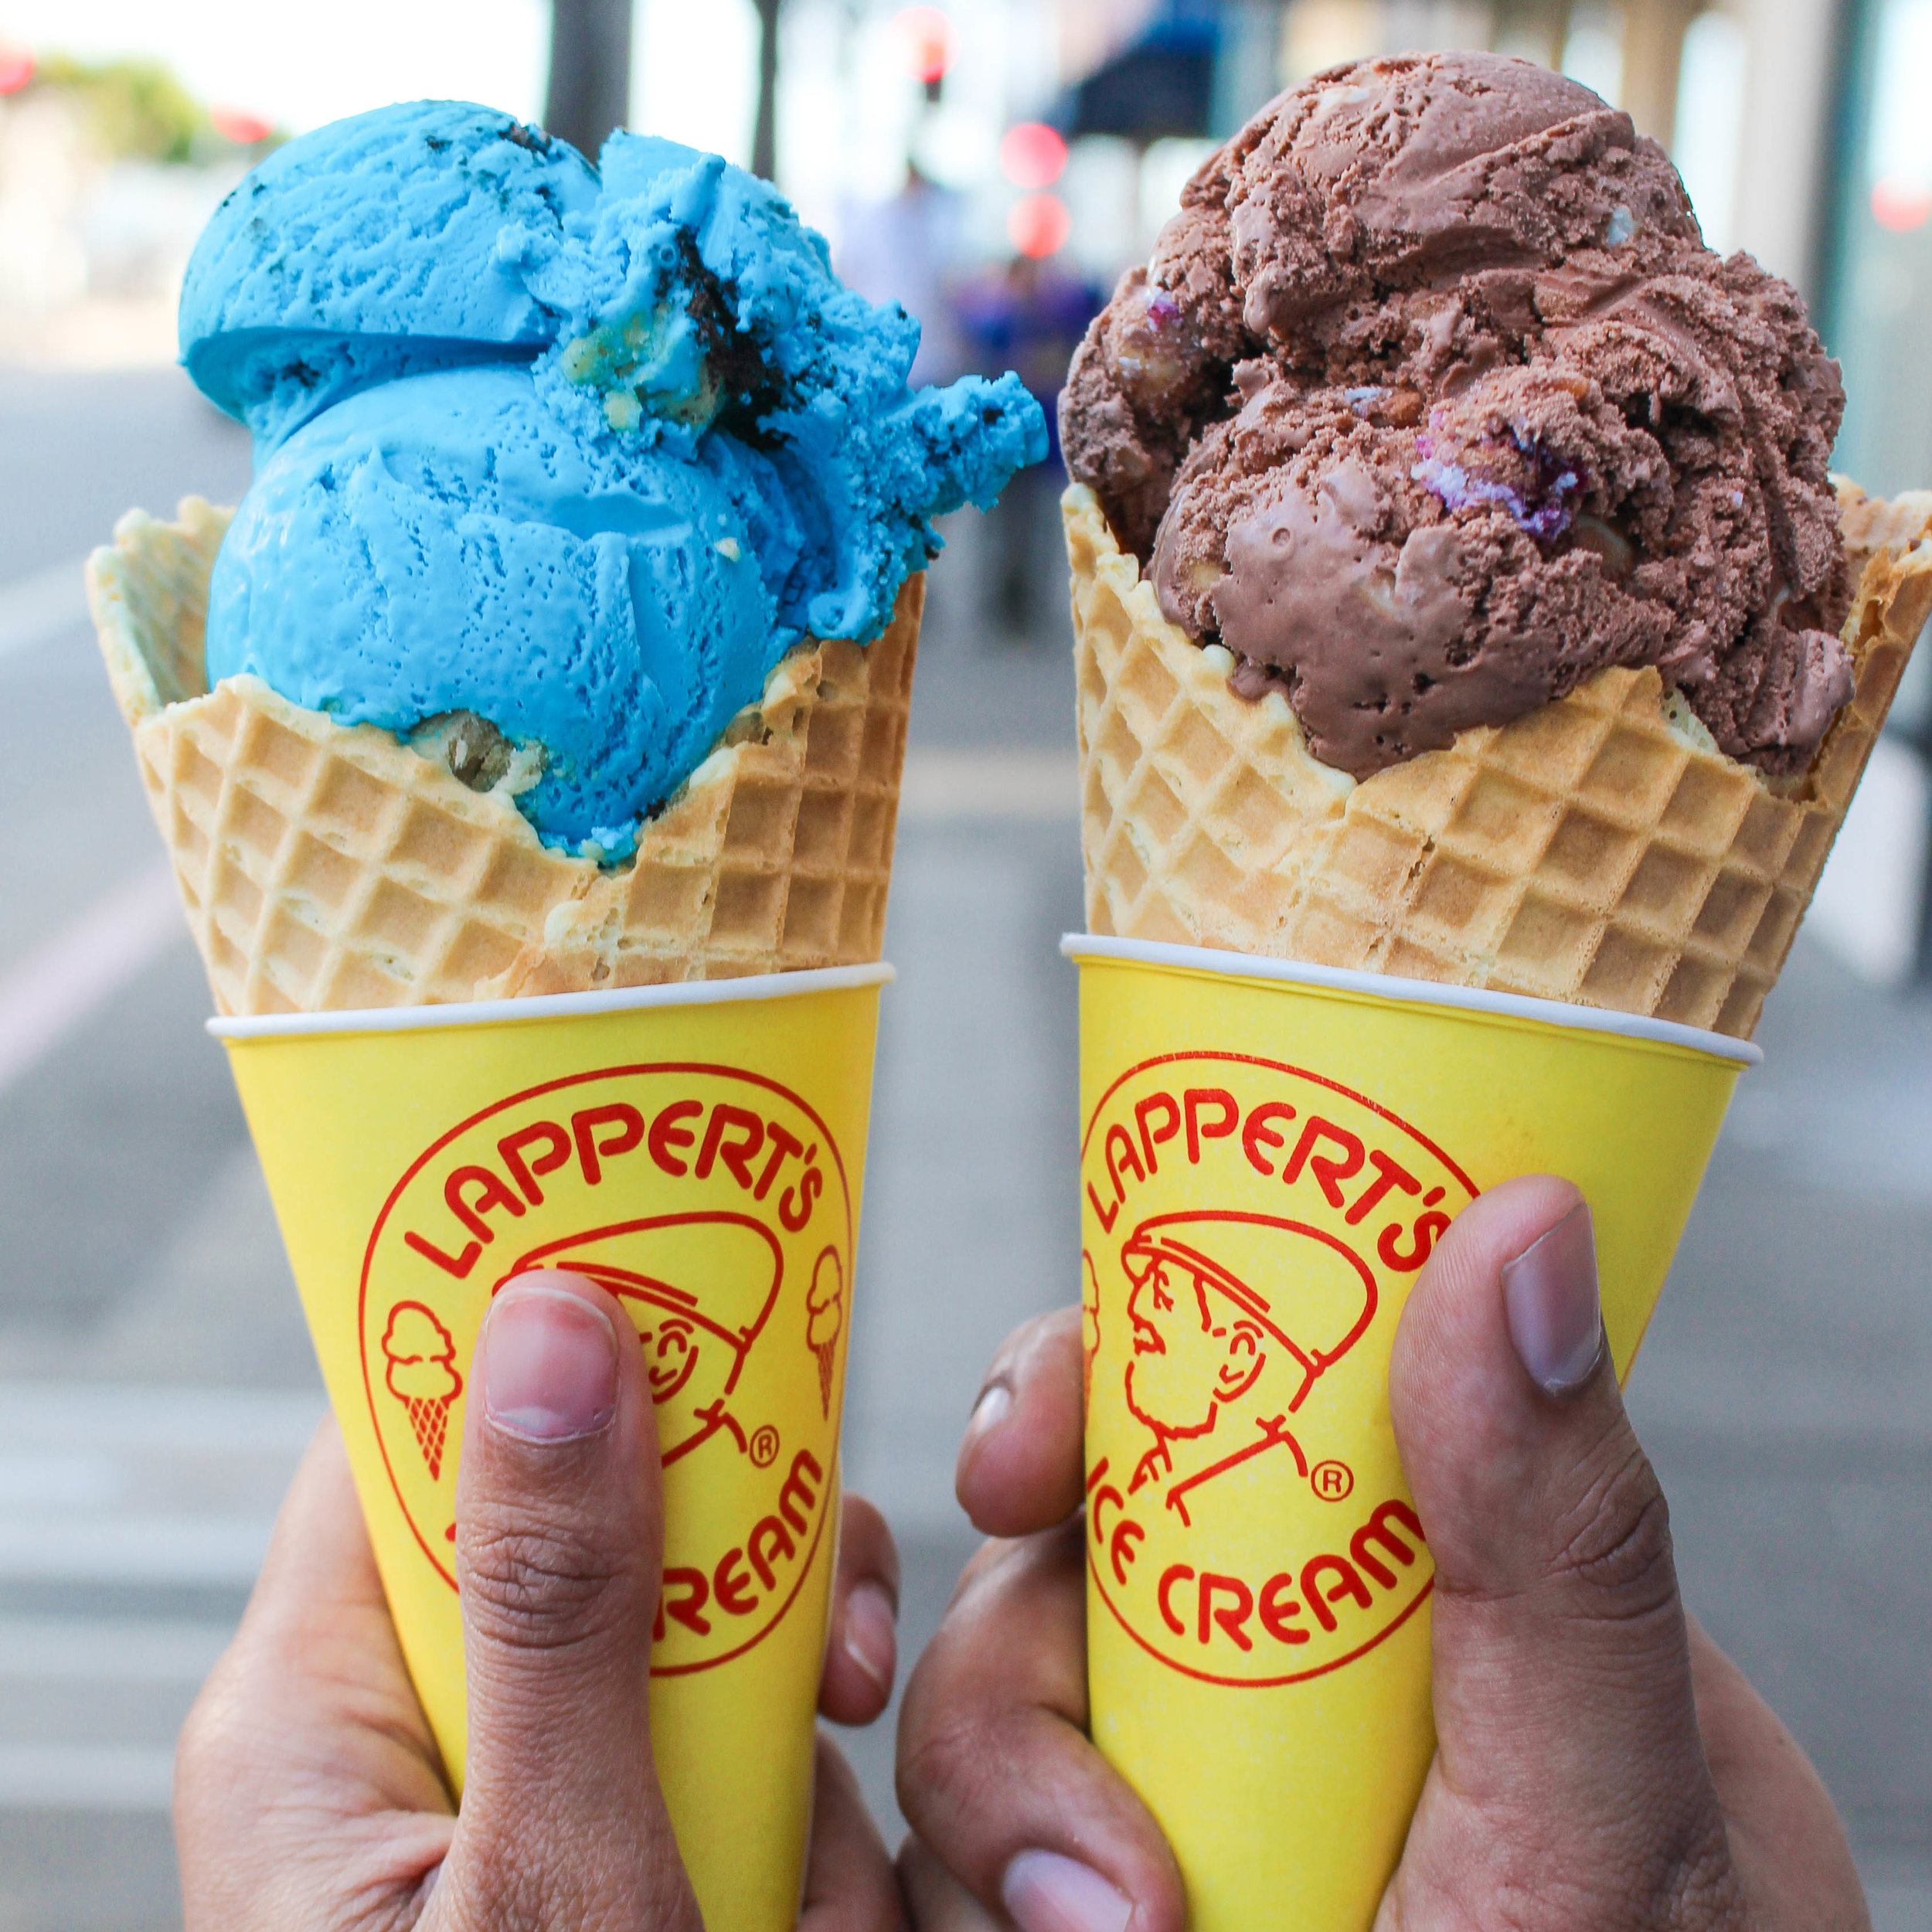 - What to Order? My all-time favorite is the Cookie Monster ice cream!